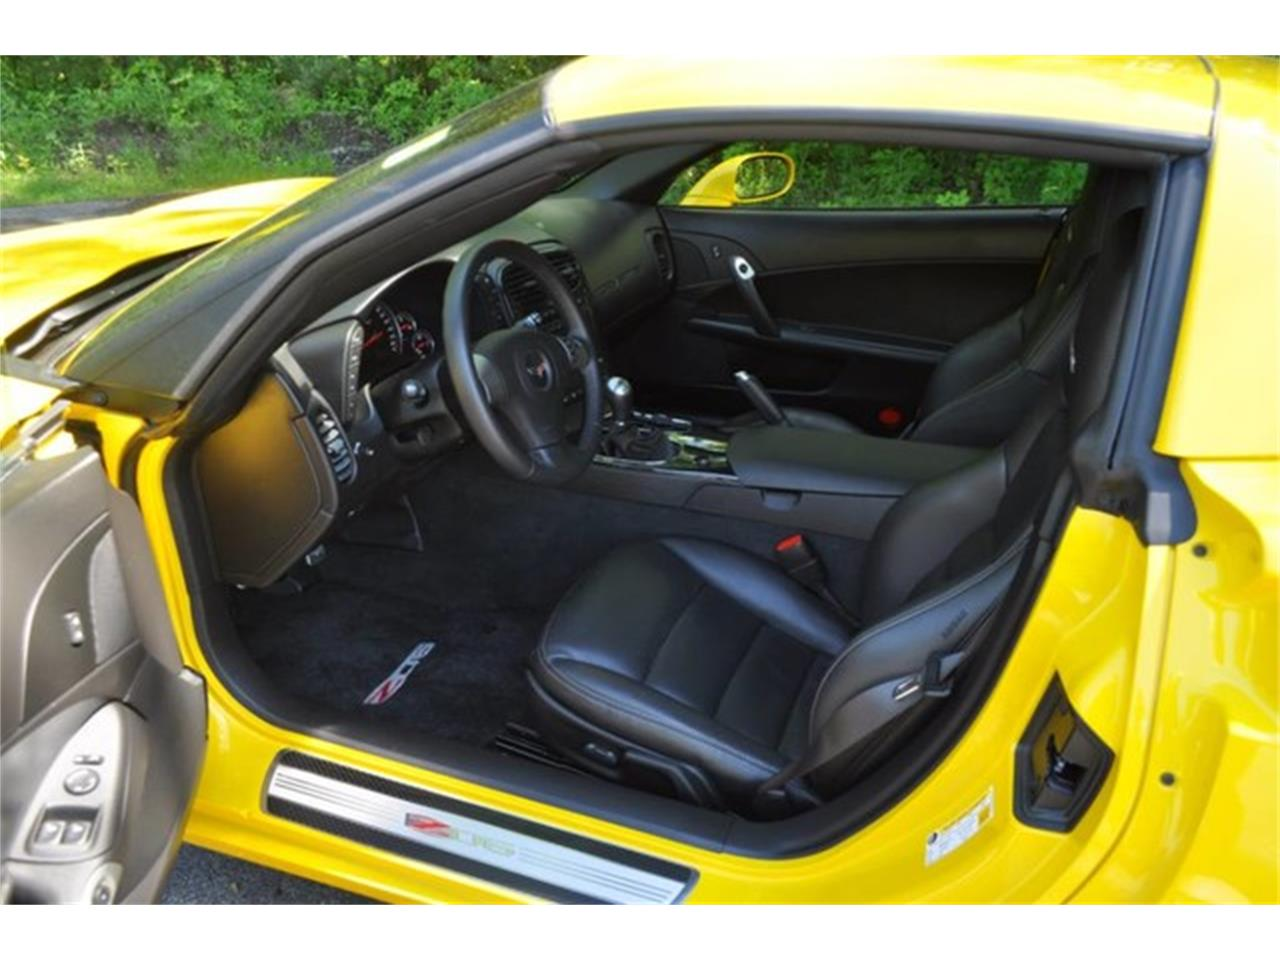 Large Picture of 2010 Corvette located in New York - $49,999.00 - L74B